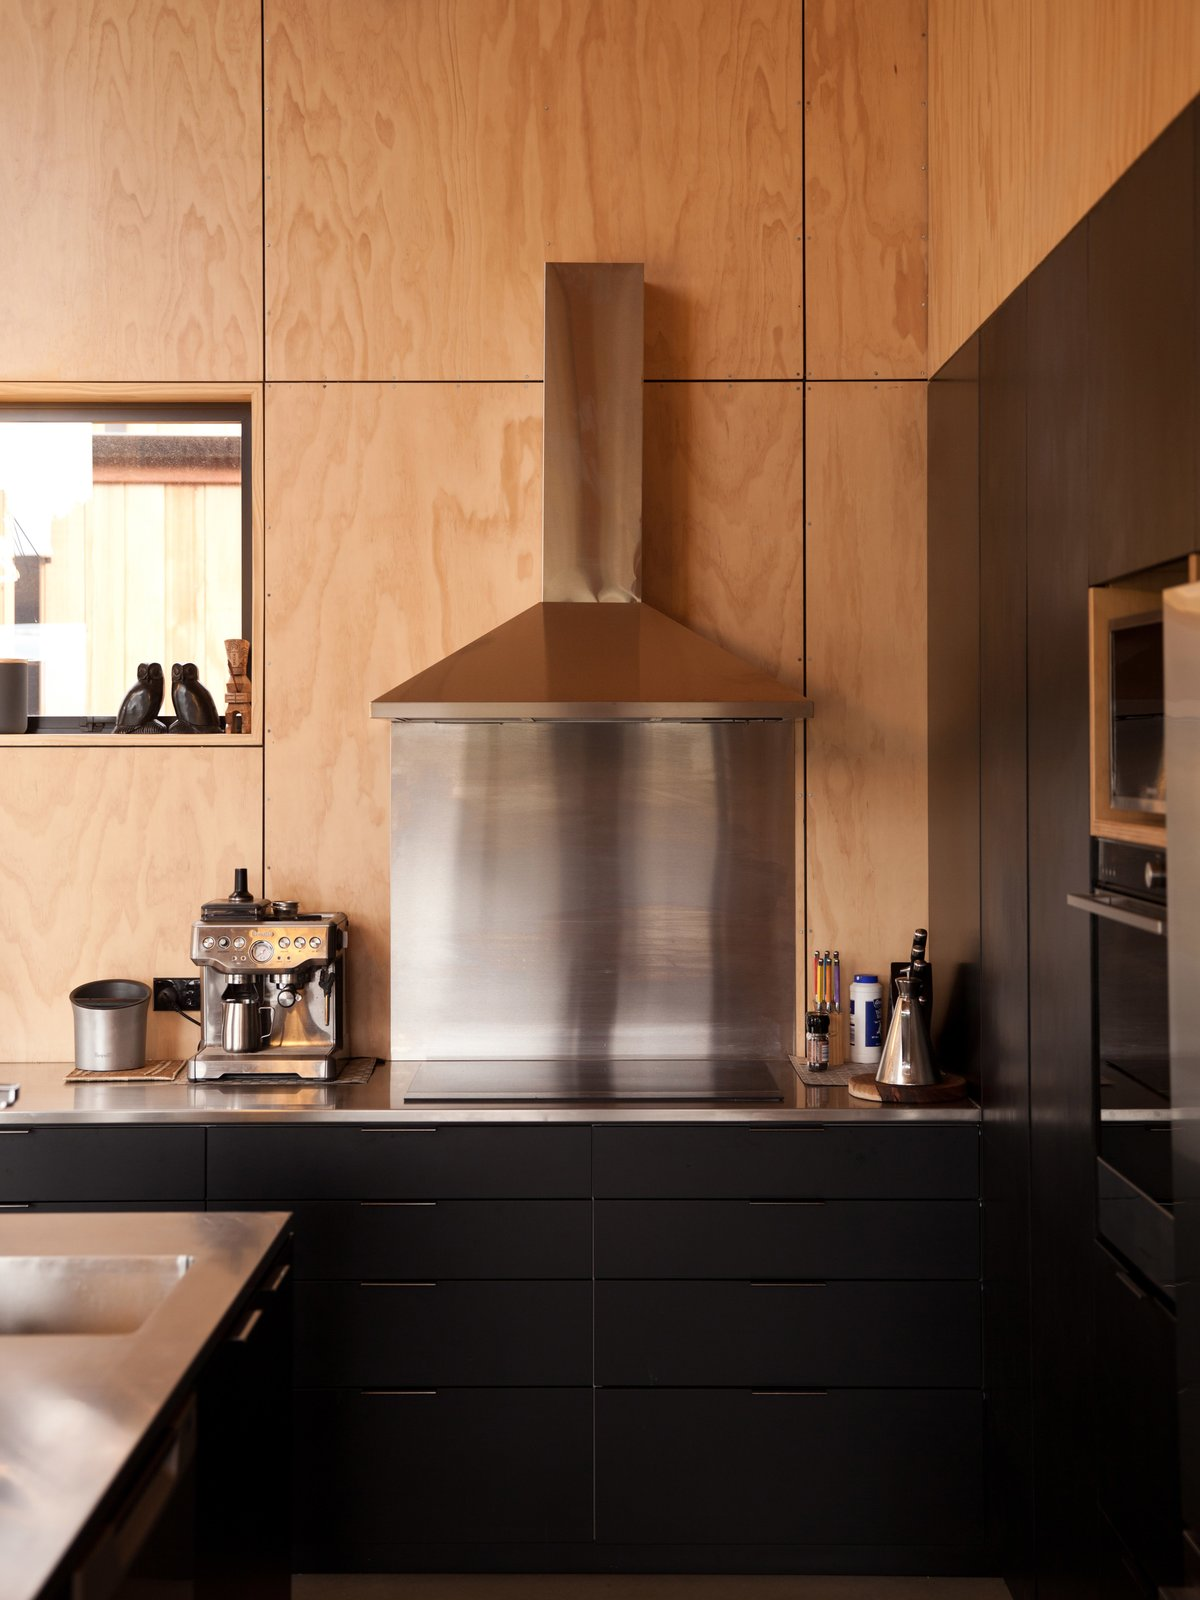 Kitchen, Metal Counter, Metal Backsplashe, Cooktops, Range Hood, Drop In Sink, Wall Oven, and Wood Backsplashe The kitchen is both stylish and practical.  Photos from A Tiny Cabin Boasts Big Views of the New Zealand Countryside